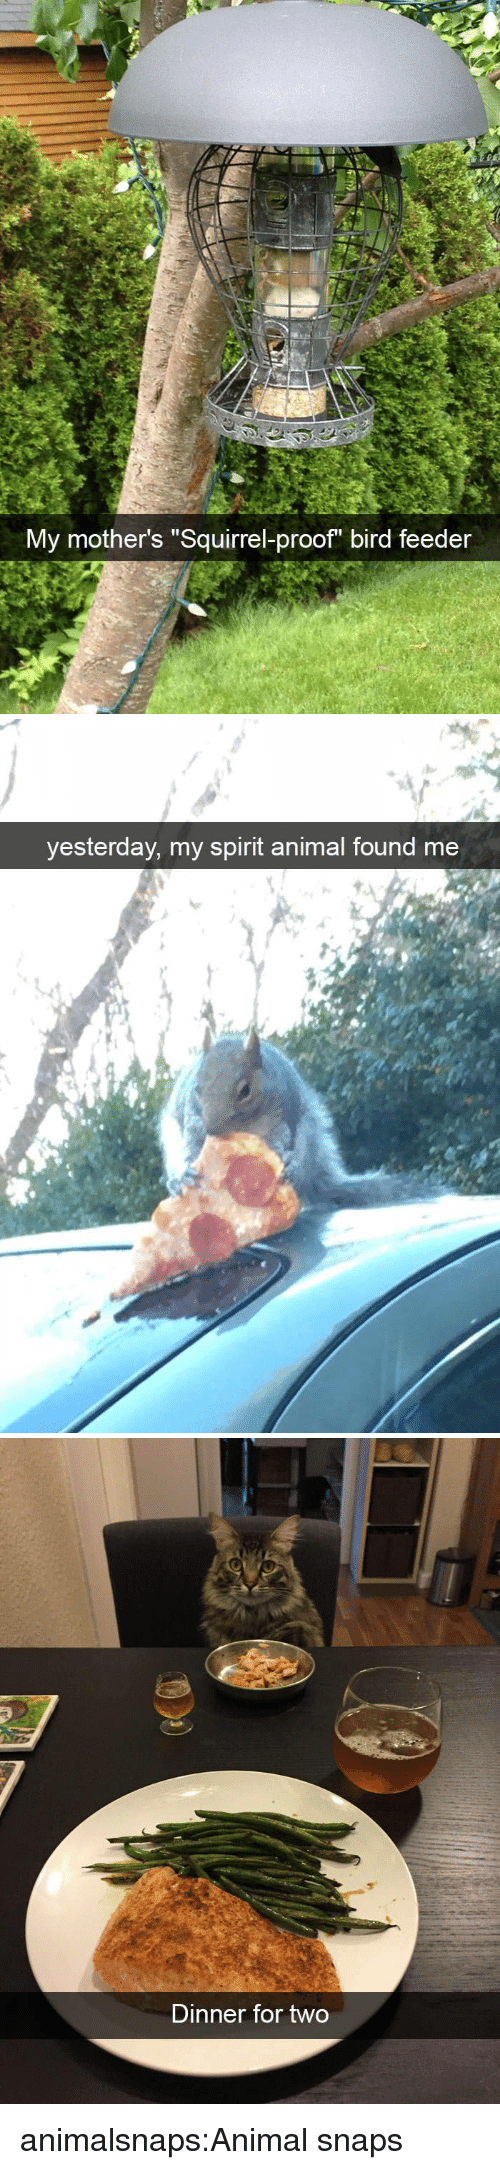 """Target, Tumblr, and Animal: My mother's """"Squirrel-proof bird feeder   yesterday, my spirit animal found me   Dinner for two animalsnaps:Animal snaps"""